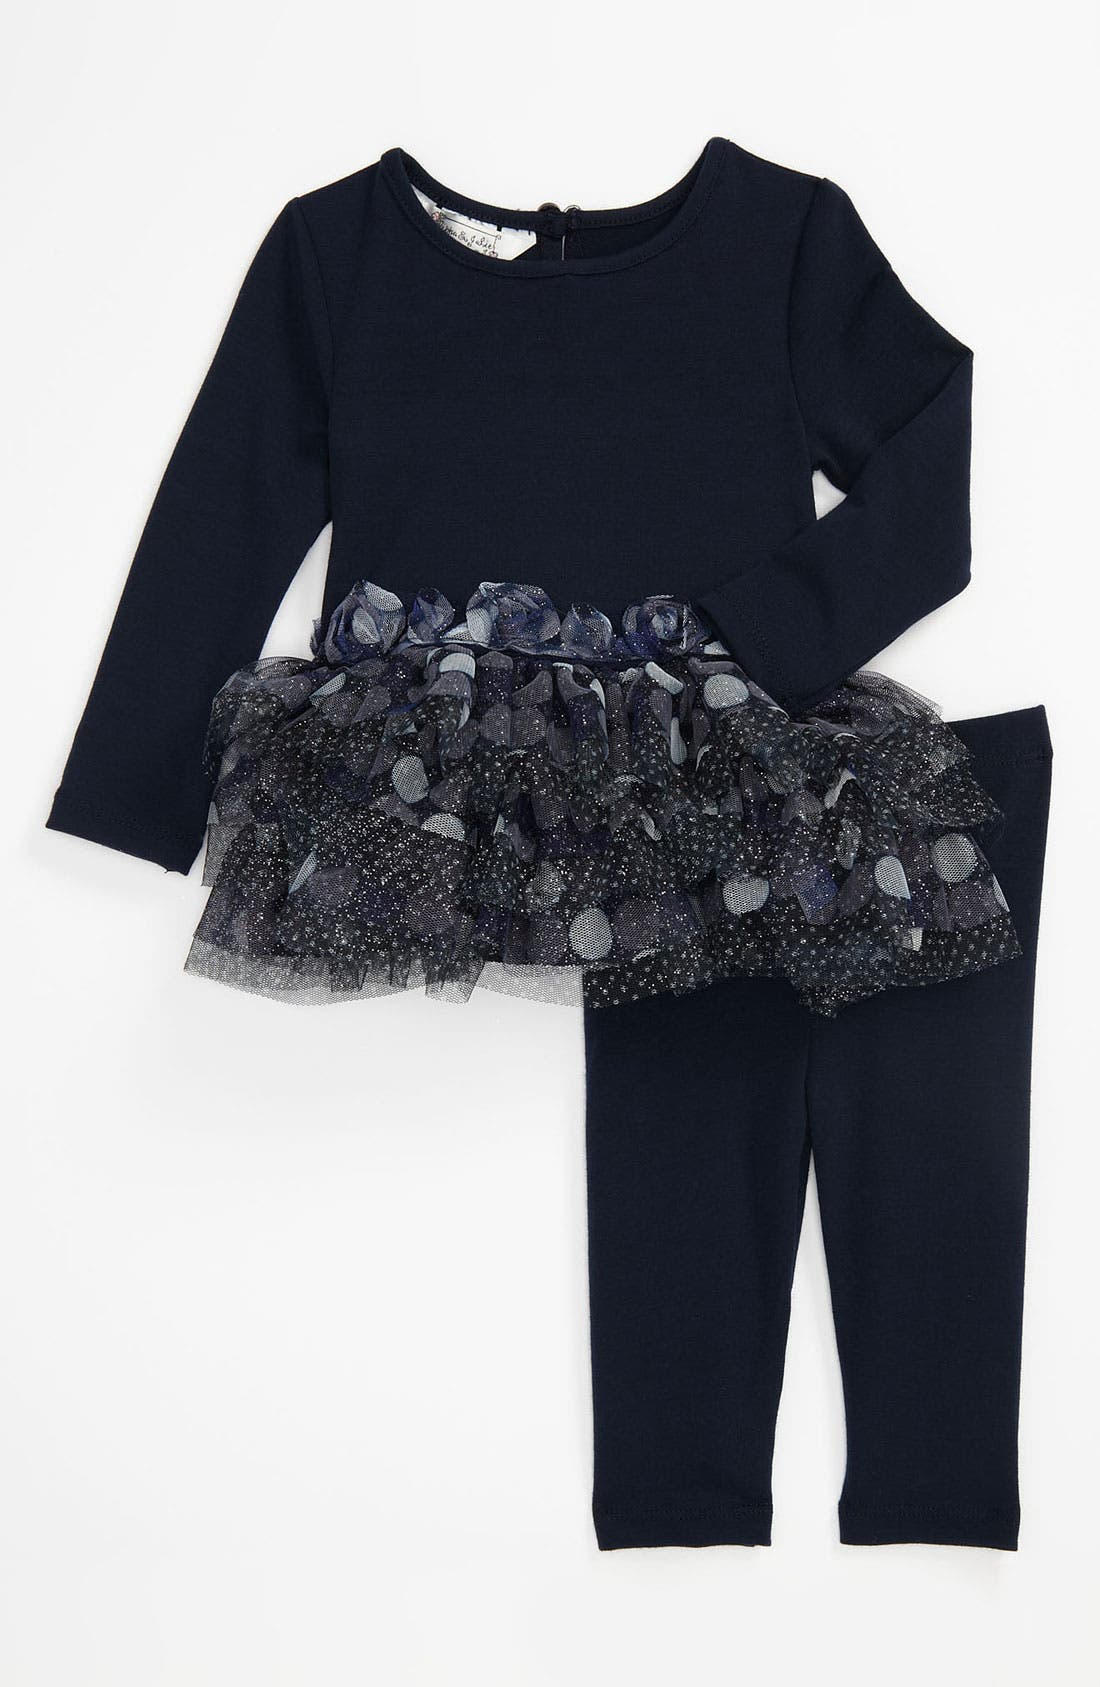 Main Image - Pippa & Julie Knit Top & Leggings (Infant)